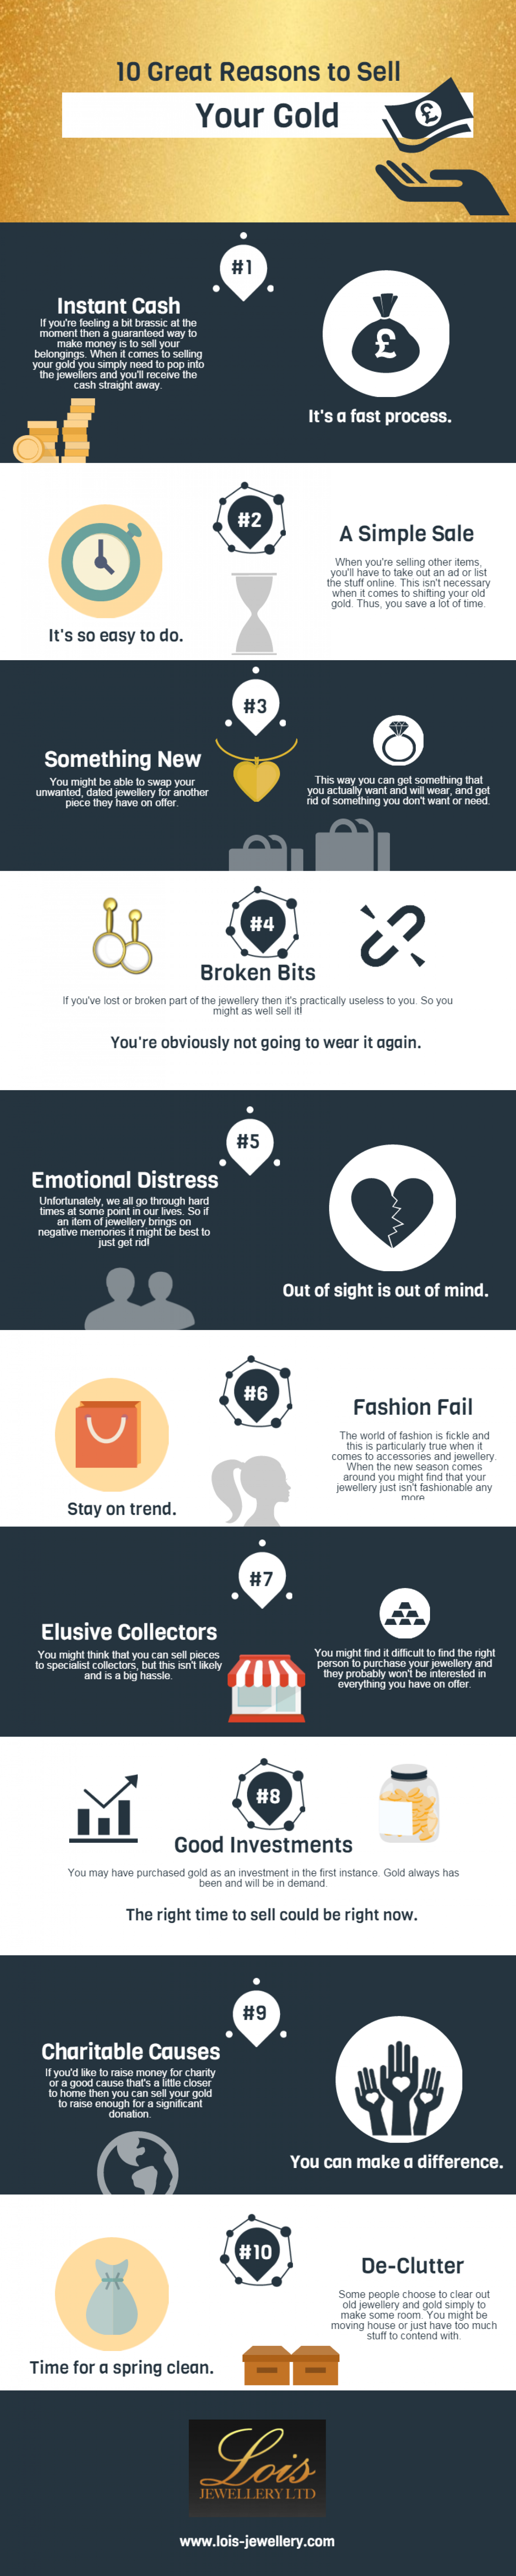 10 Great Reasons to Sell Your Gold Infographic